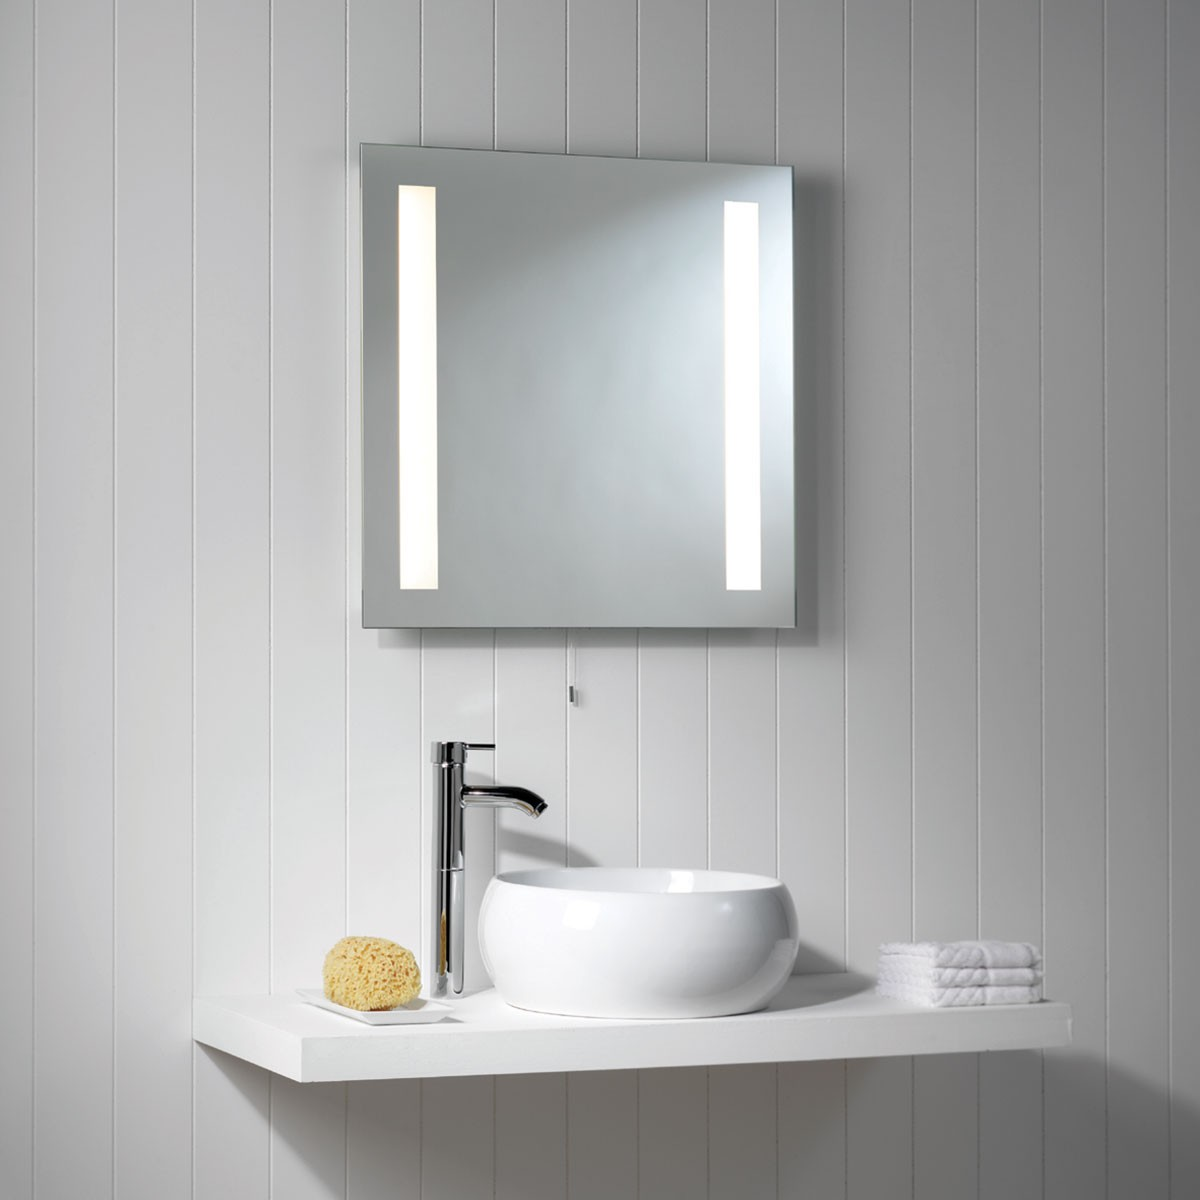 Astro galaxy bathroom mirror light at uk electrical supplies for Lights for bathroom mirror